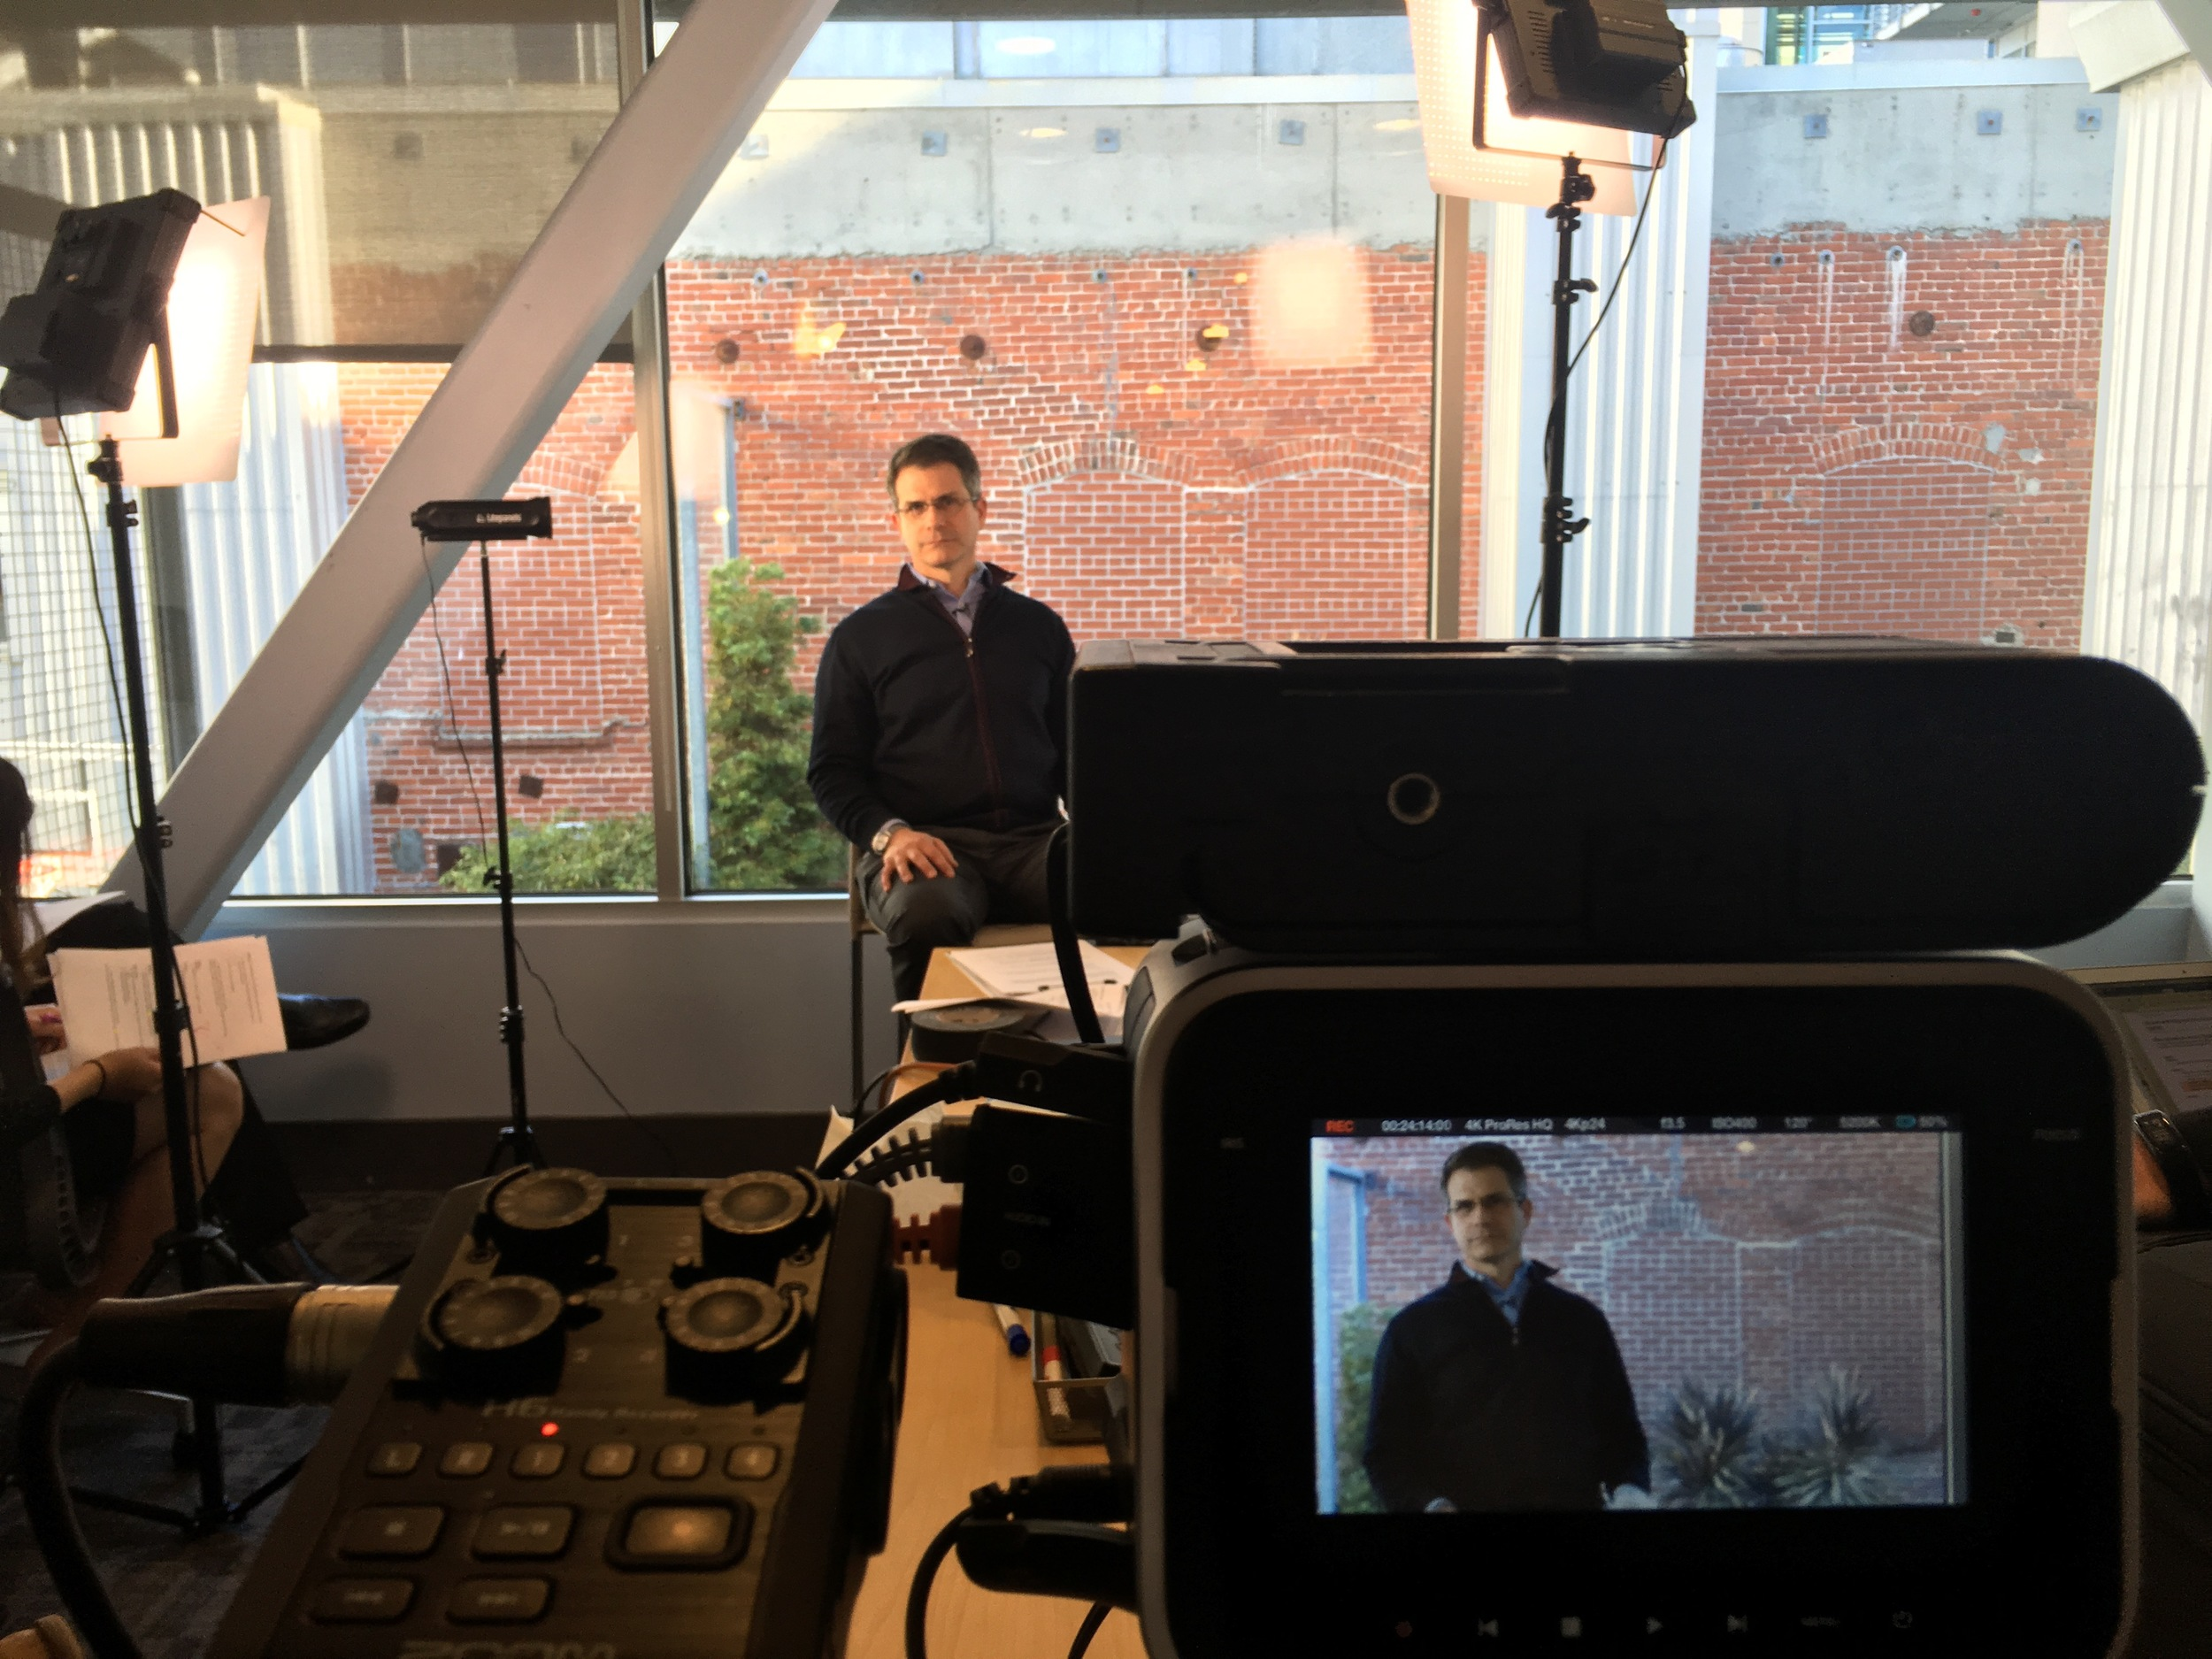 Our shoot in San Francisco in the Splunk HQ. Just minor evidence of our workload.